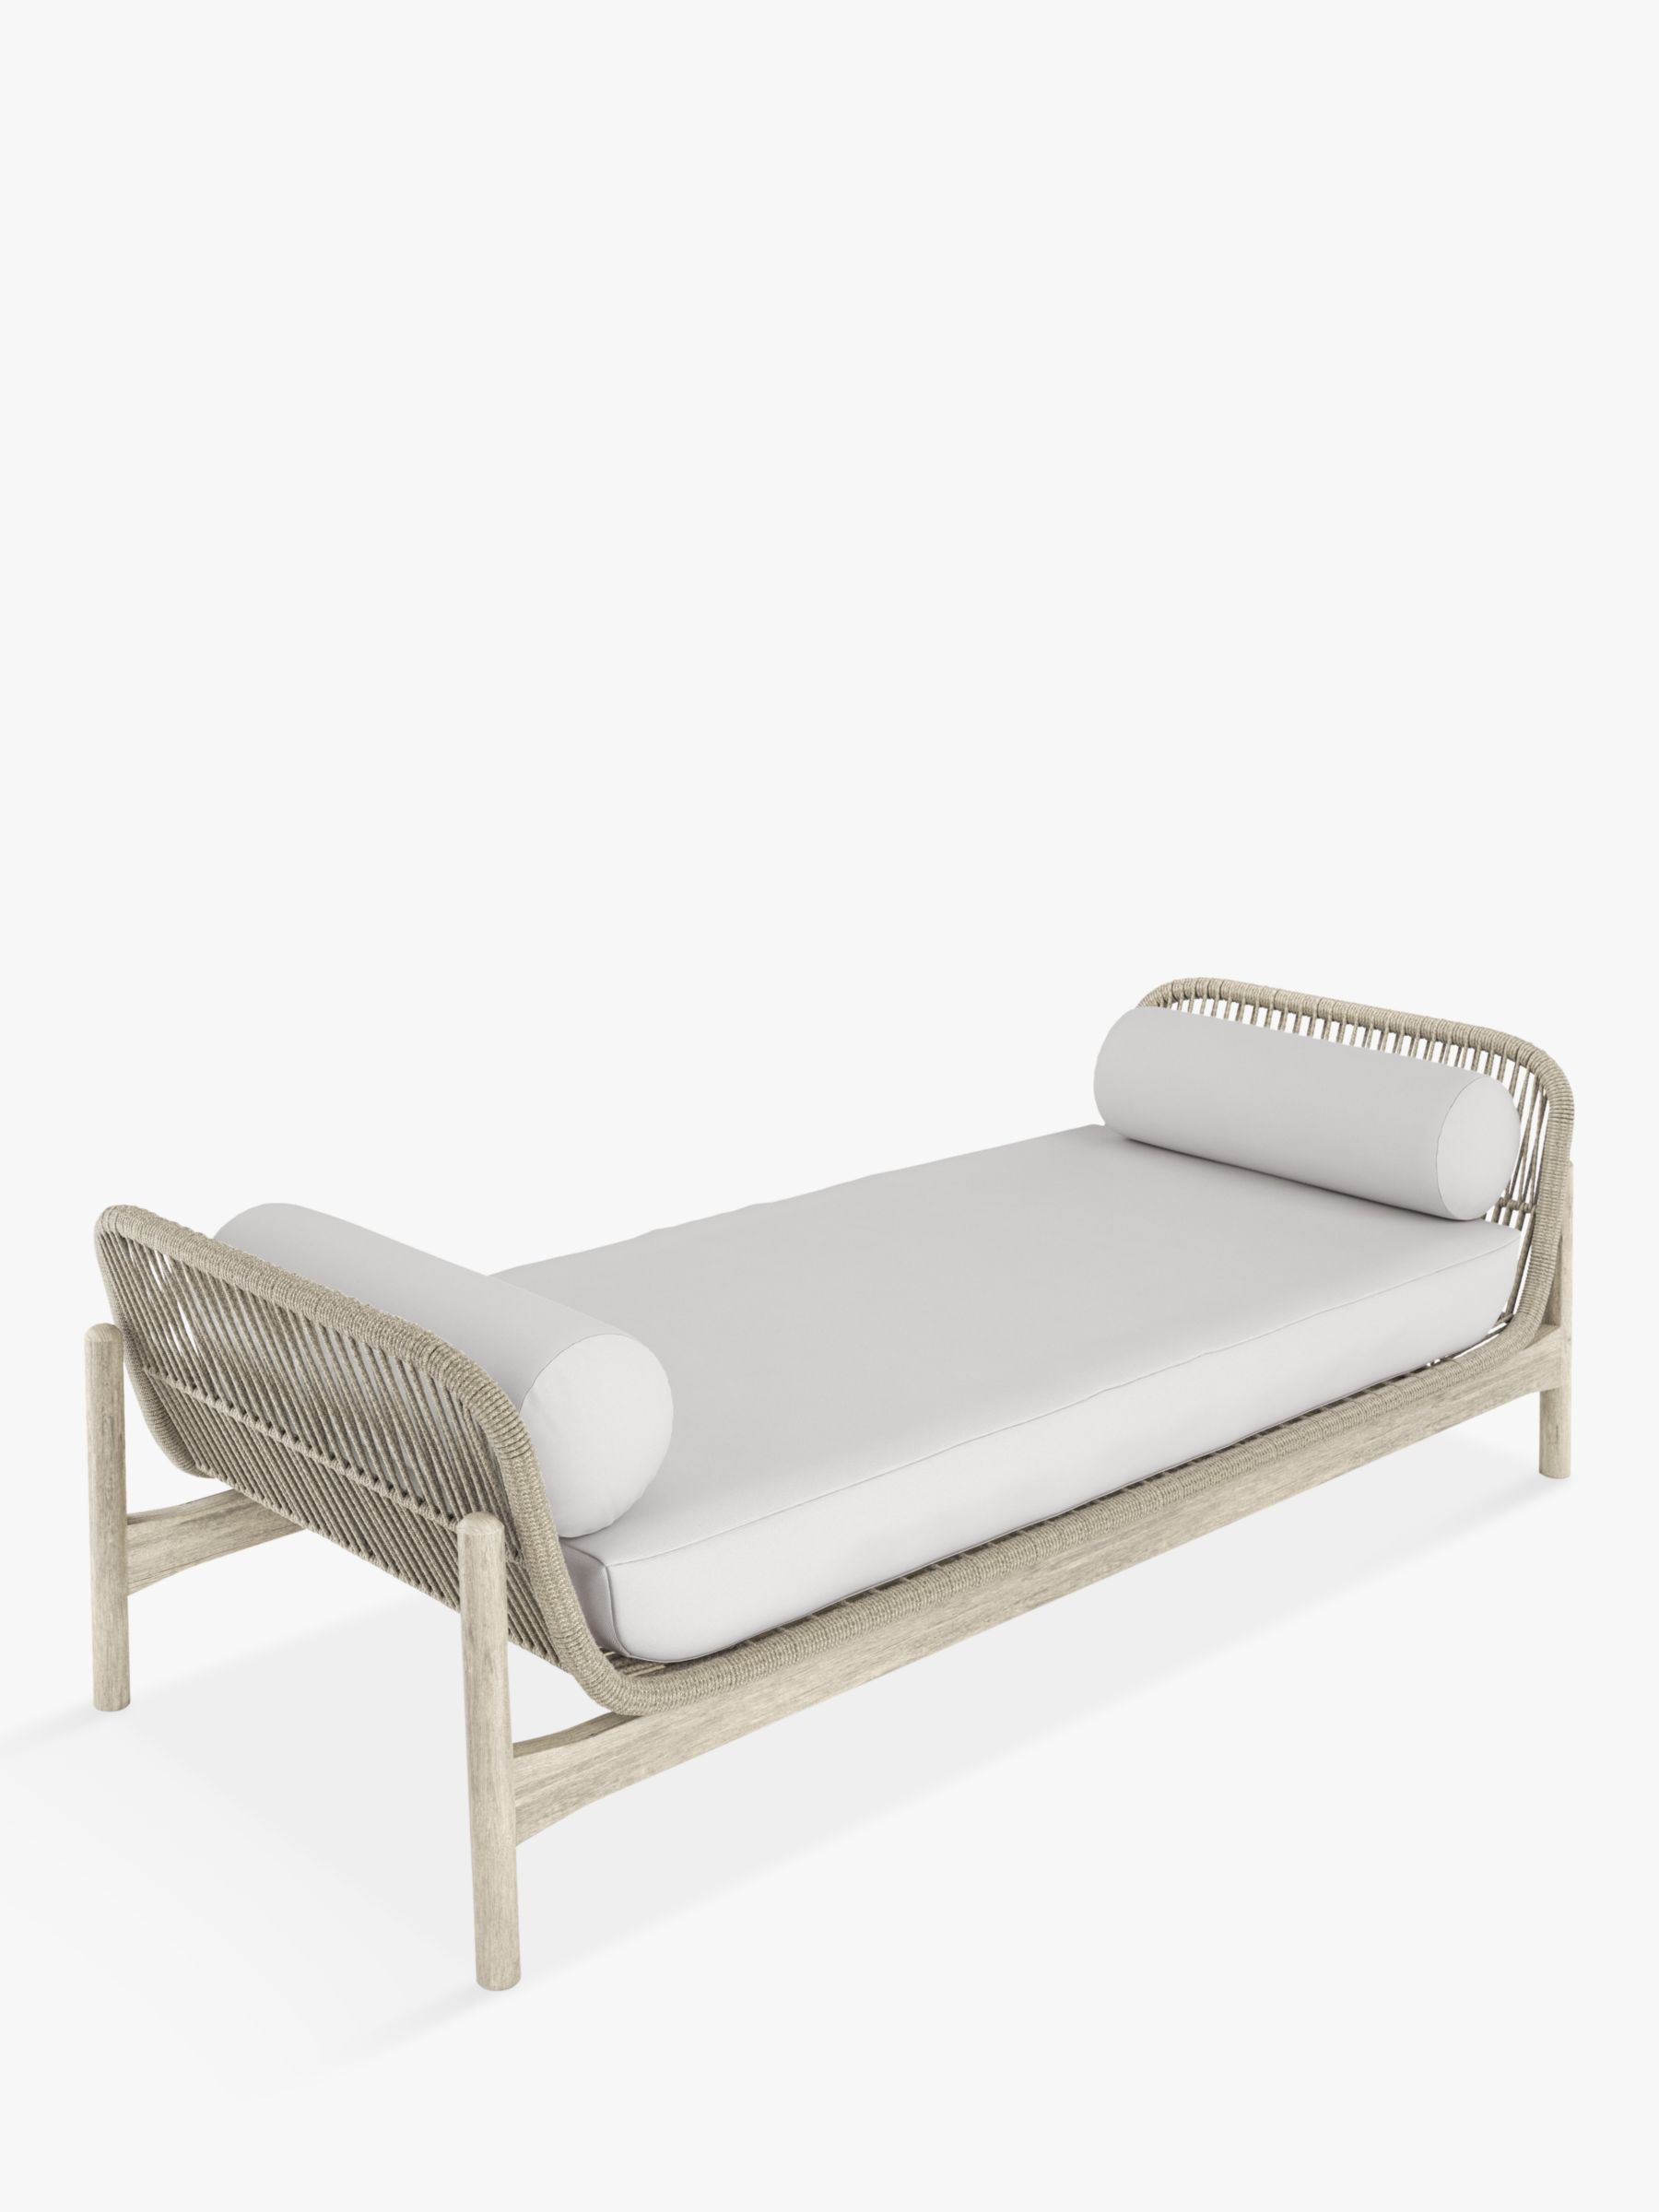 John Lewis & Partners Cradle Rope 2-Seat Garden Day Bed, FSC-Certified (Acacia Wood), Natural